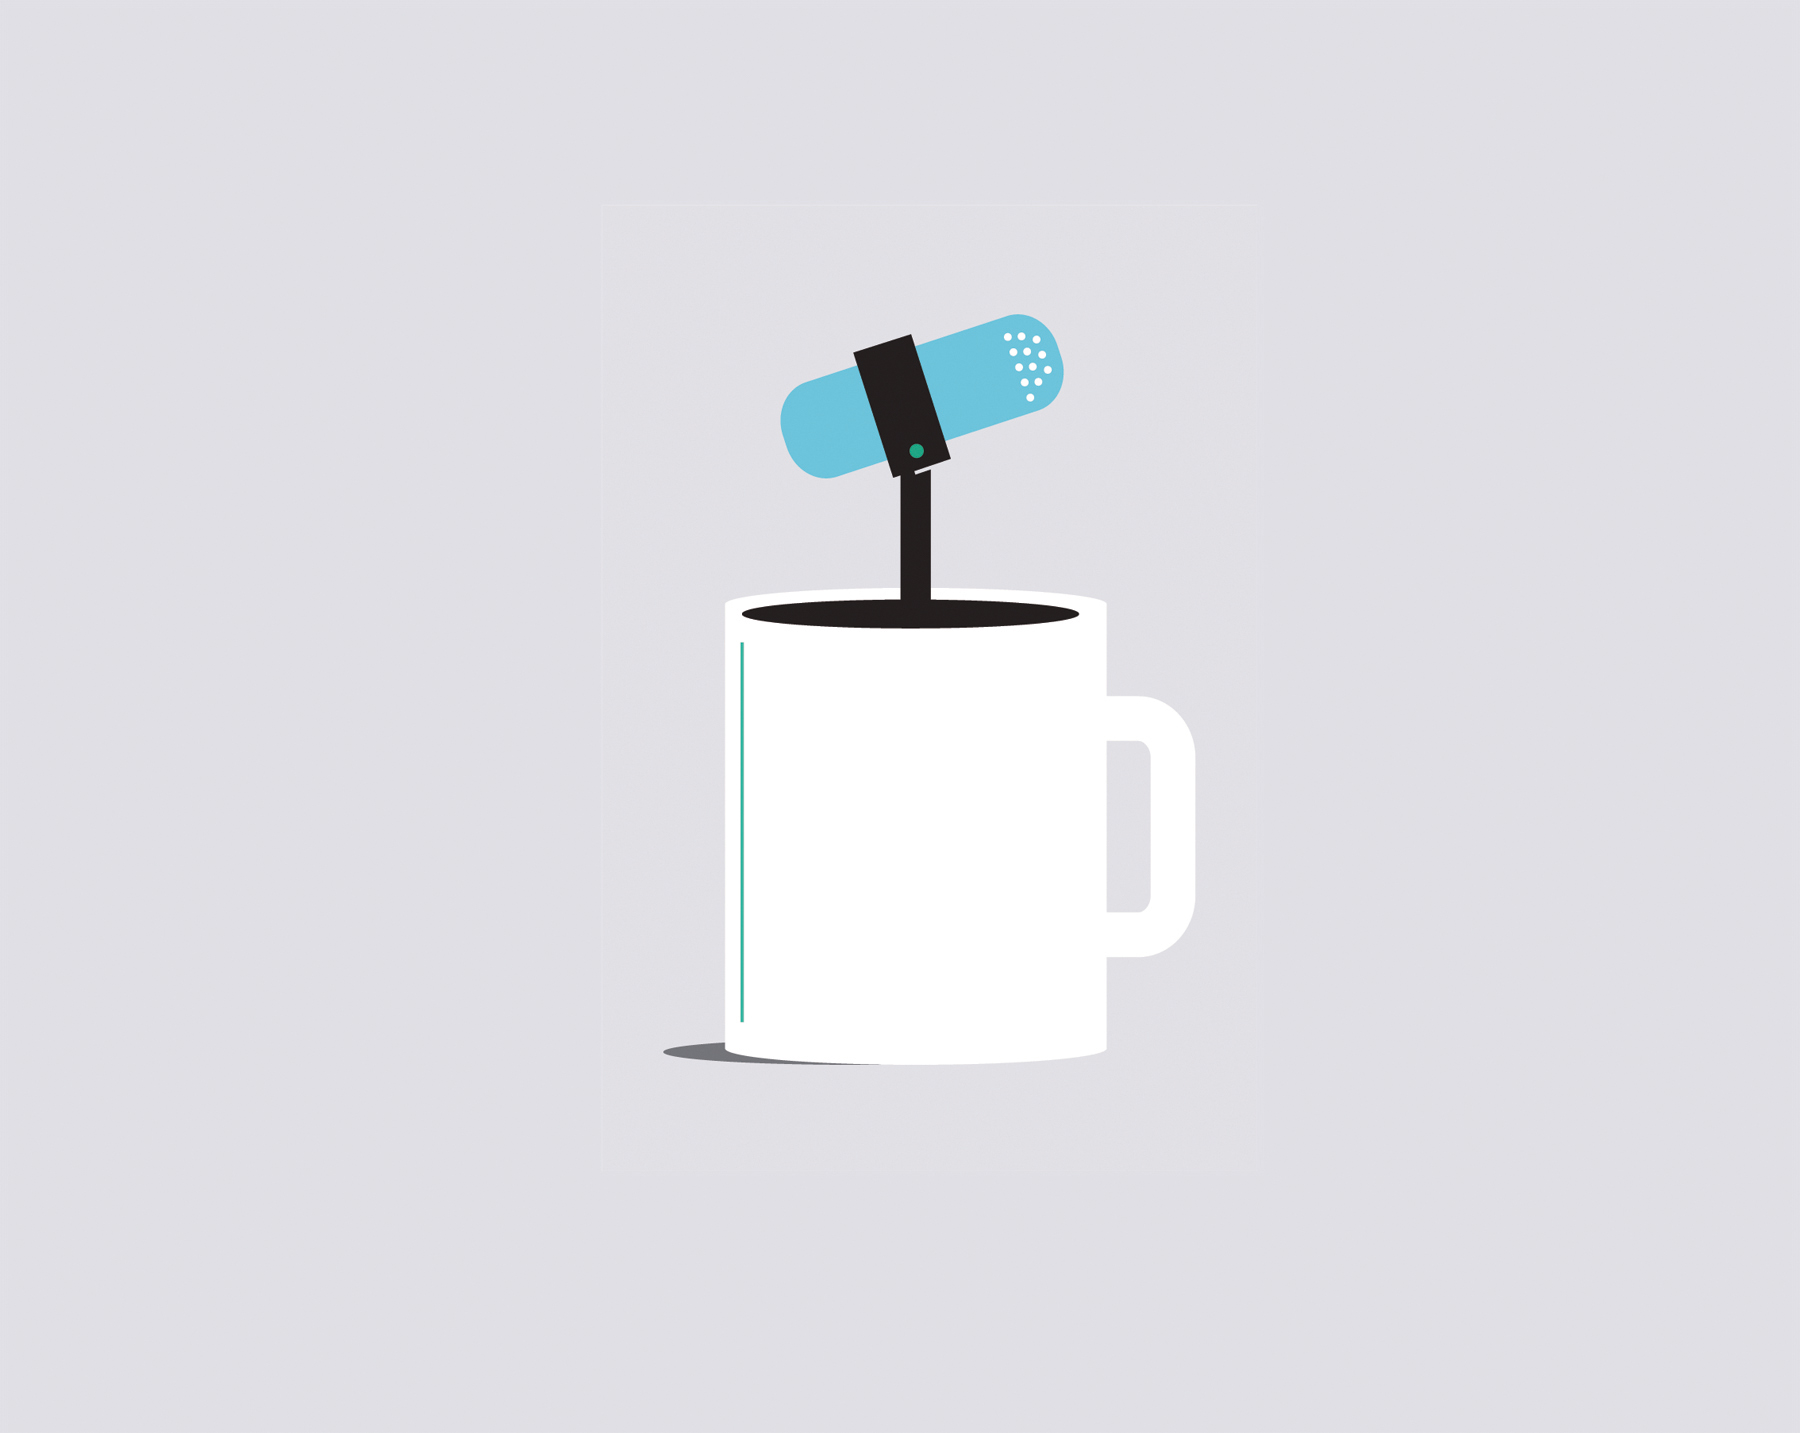 Illustration: Coffee with microphone